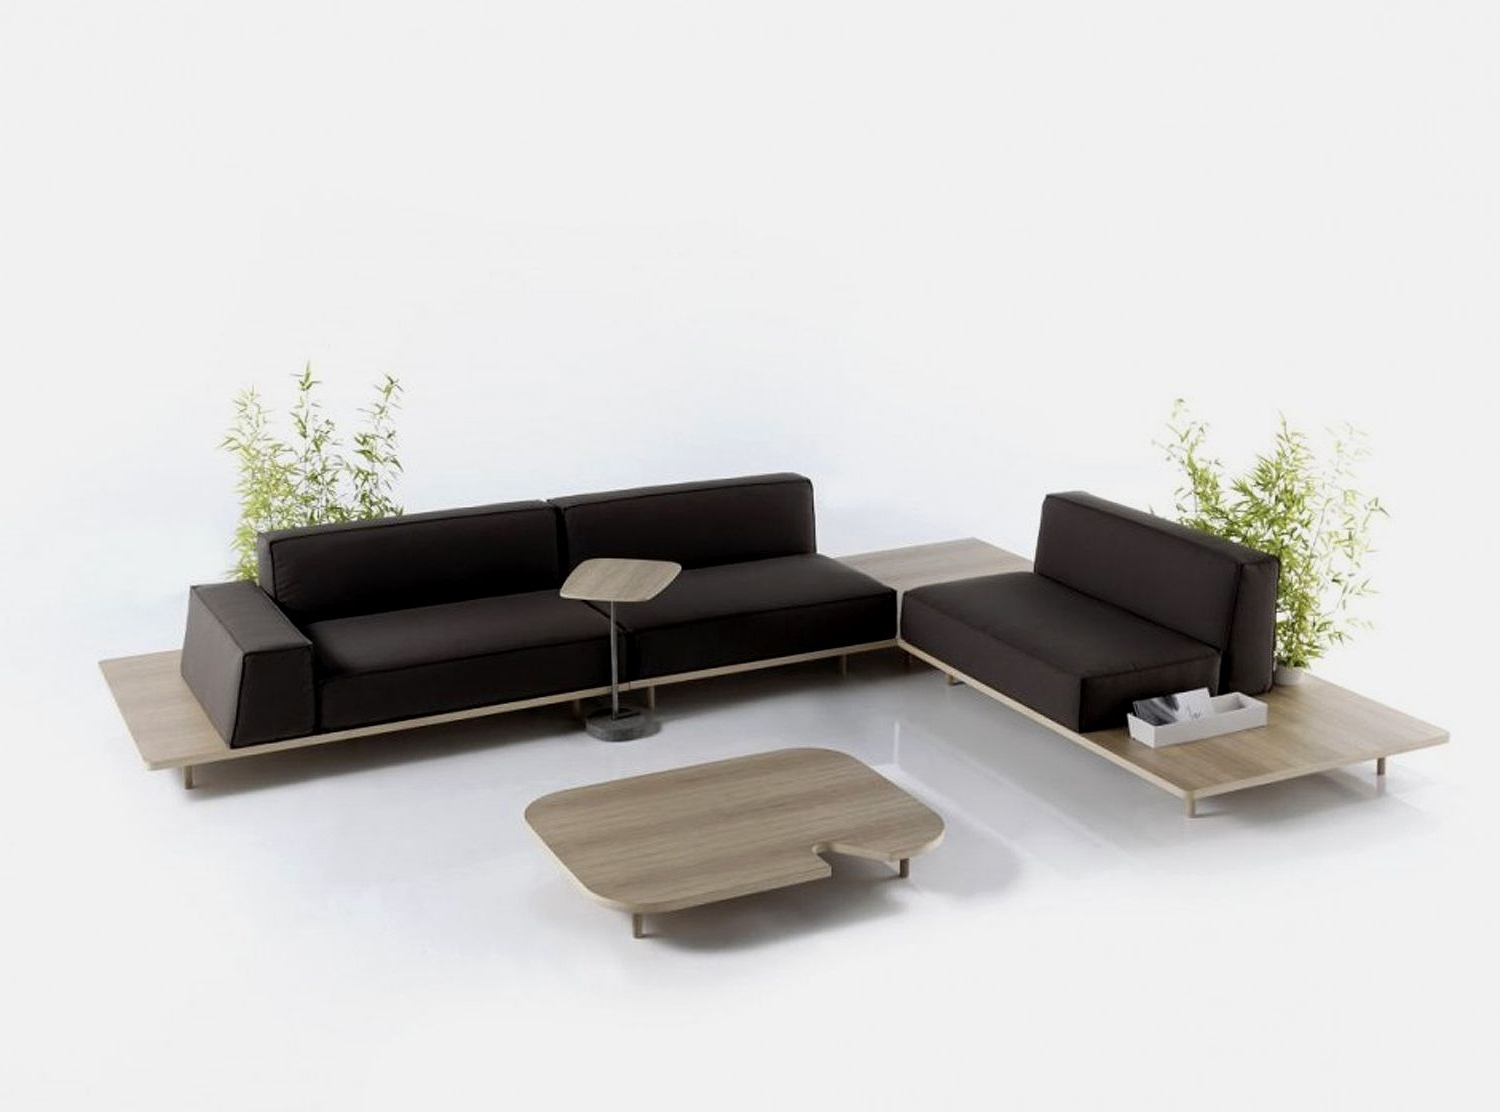 Sofa Furniture, Modern And With Regard To Widely Used Contemporary Sofas And Chairs (View 4 of 15)